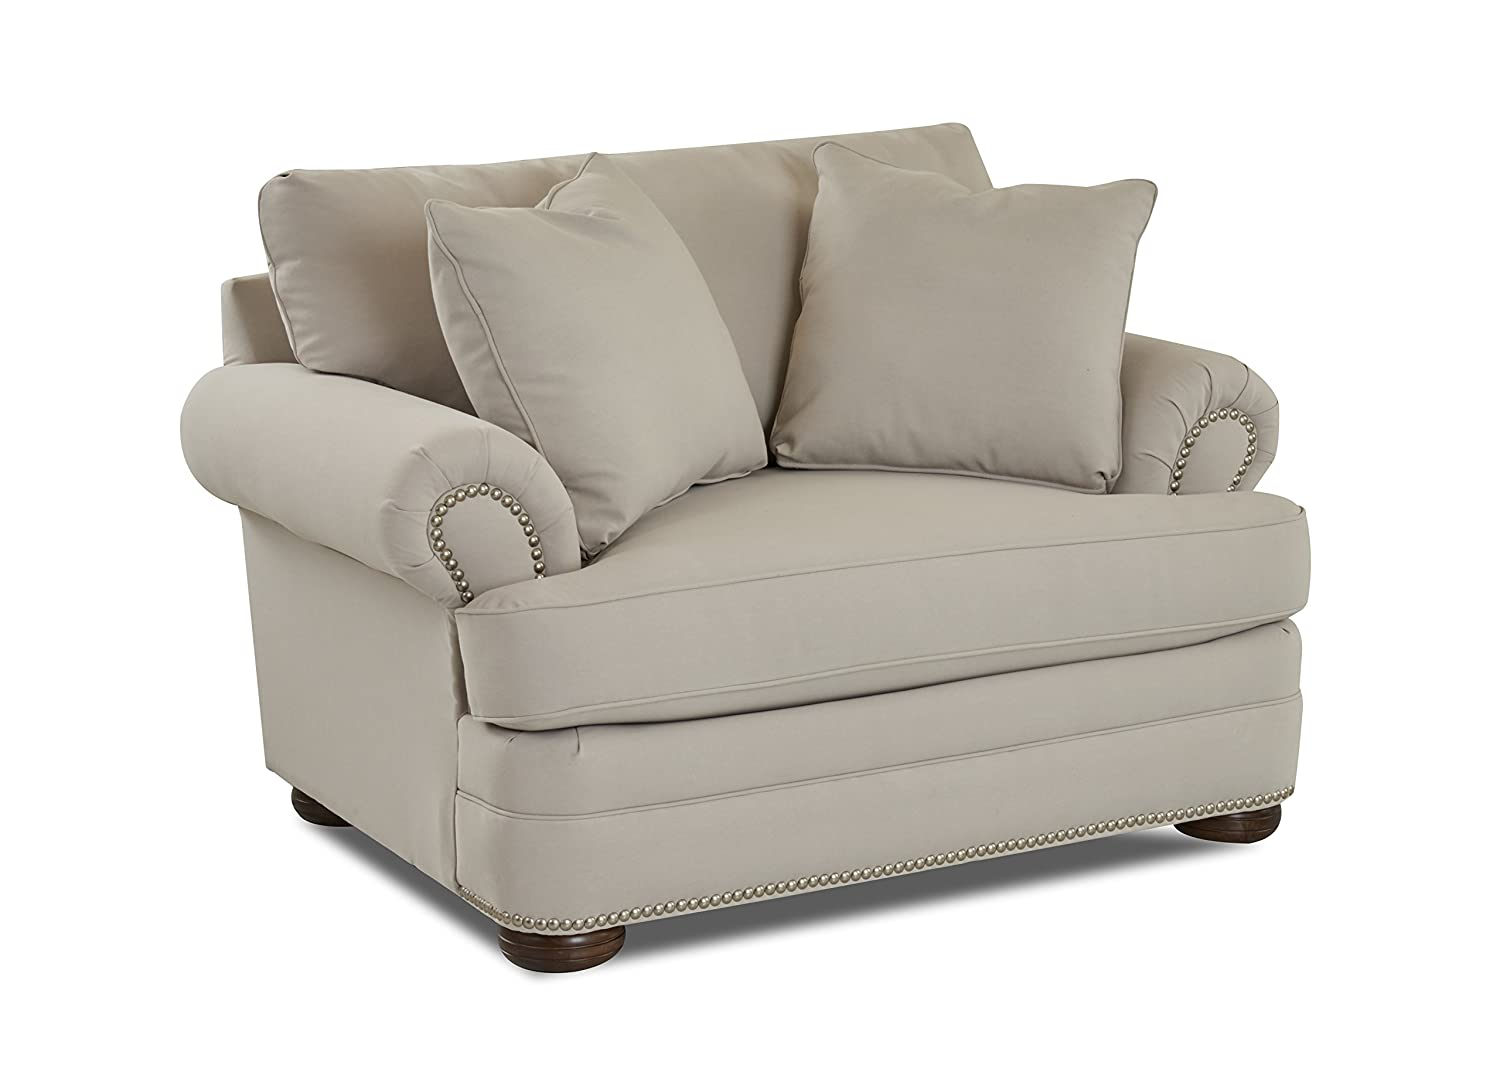 Klaussner Home Furnishings Tilden Accent Armchair with 2 Throw Pillows, 45 L x 54 W x 37 H, Sand